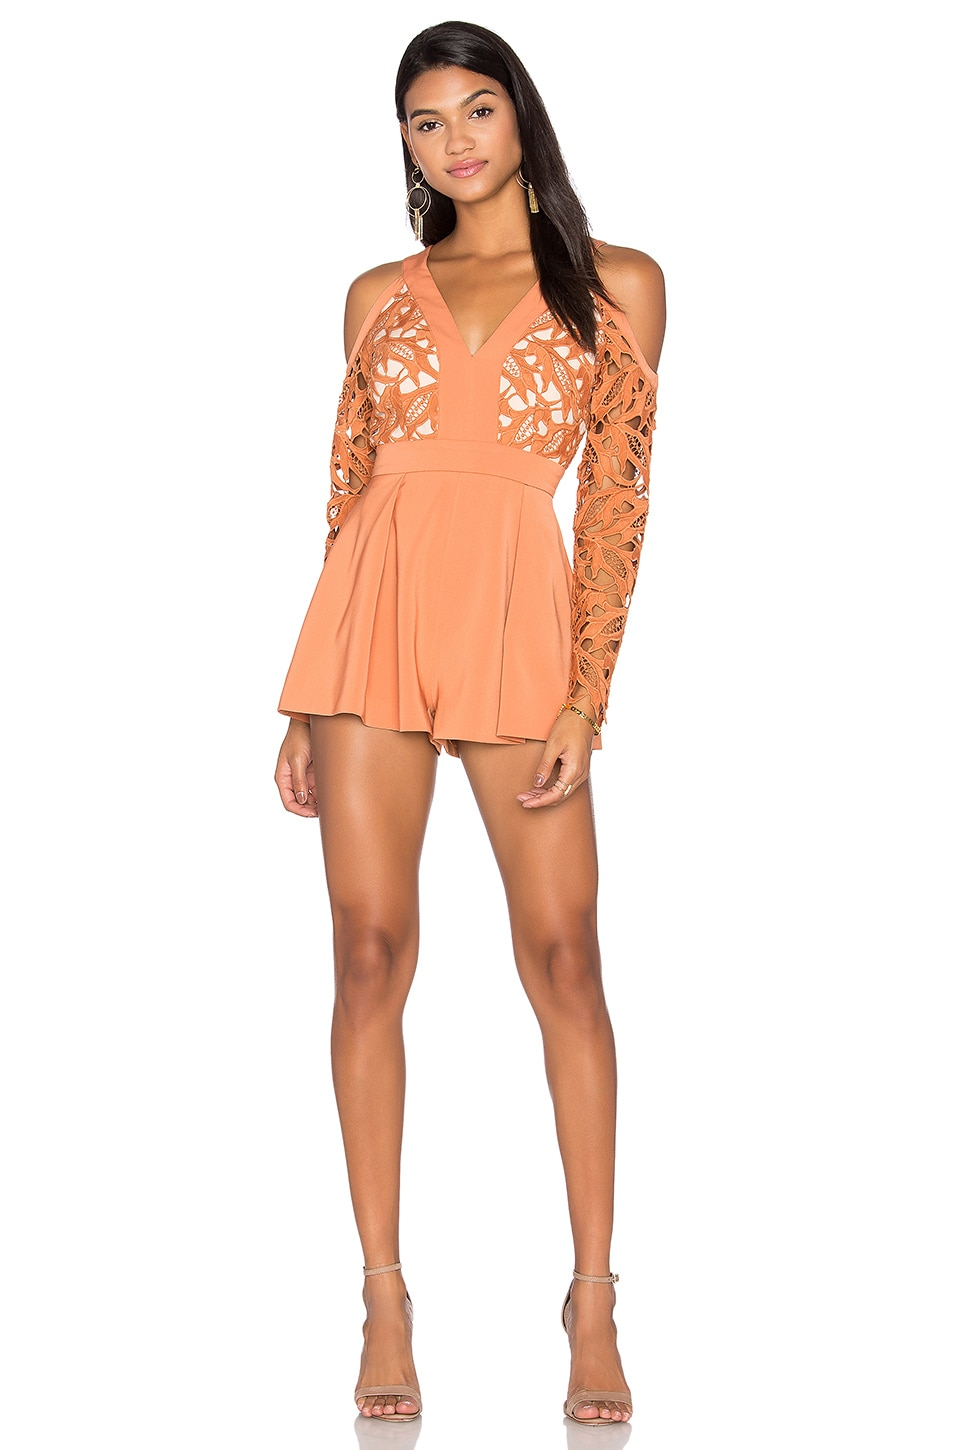 keepsake The Moment Lace Romper in Terracotta